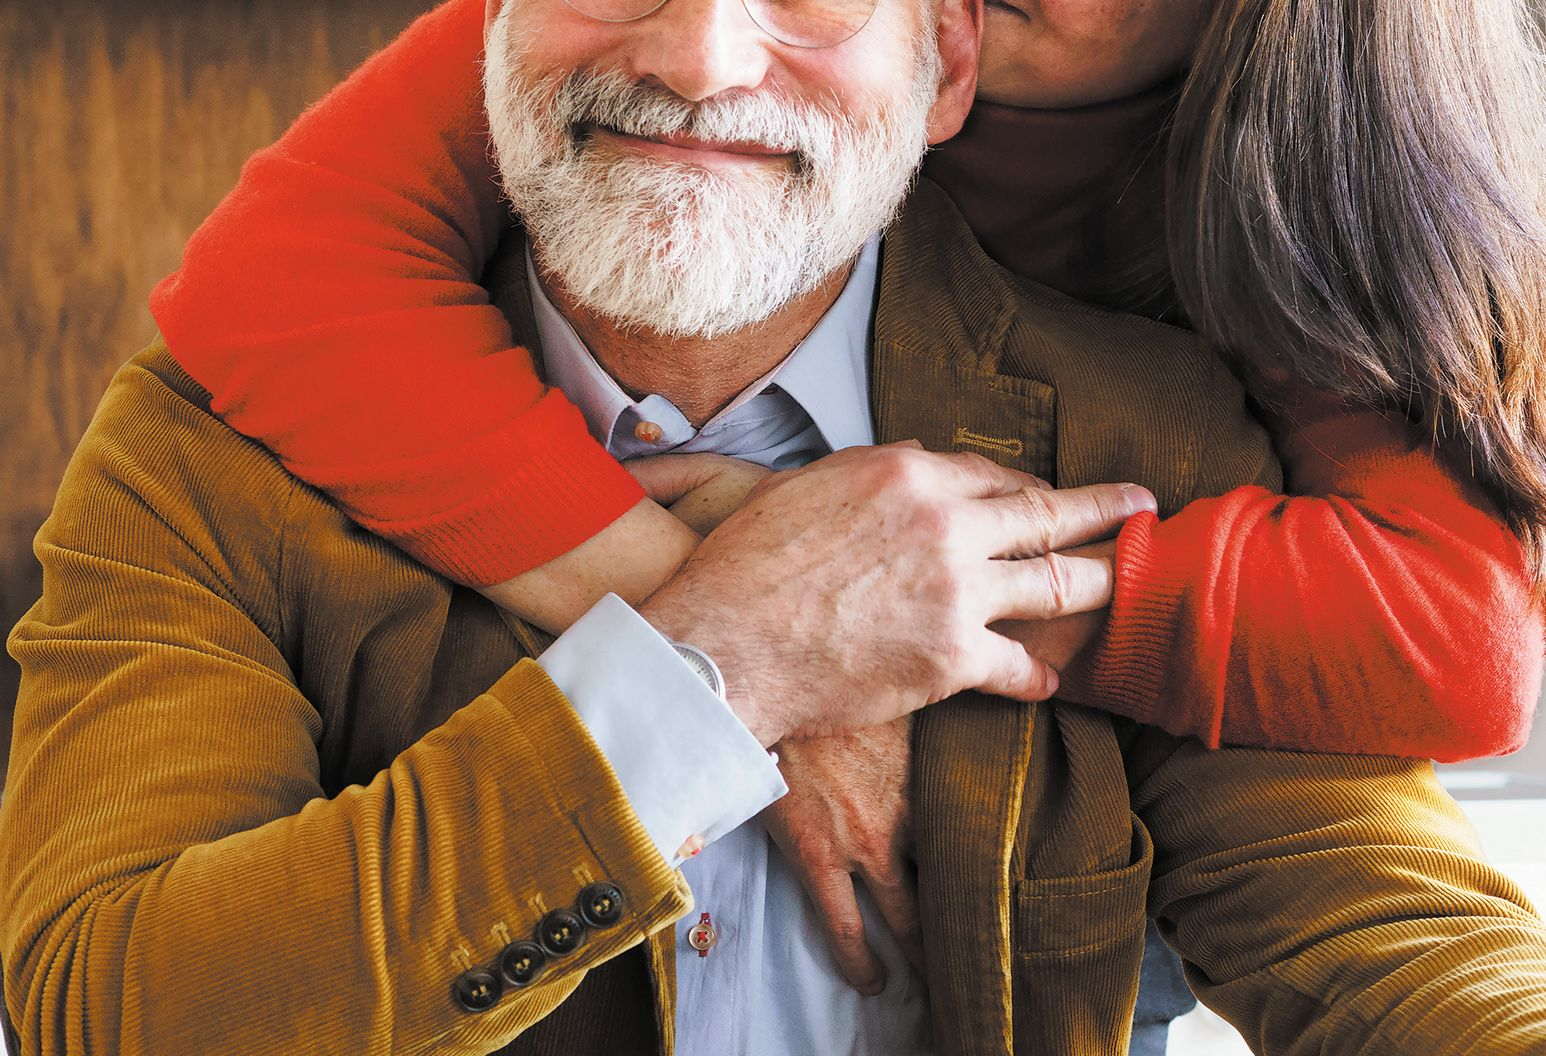 A woman in a red sweater hugs a man in a brown corduroy jacket, who smiles at the camera.